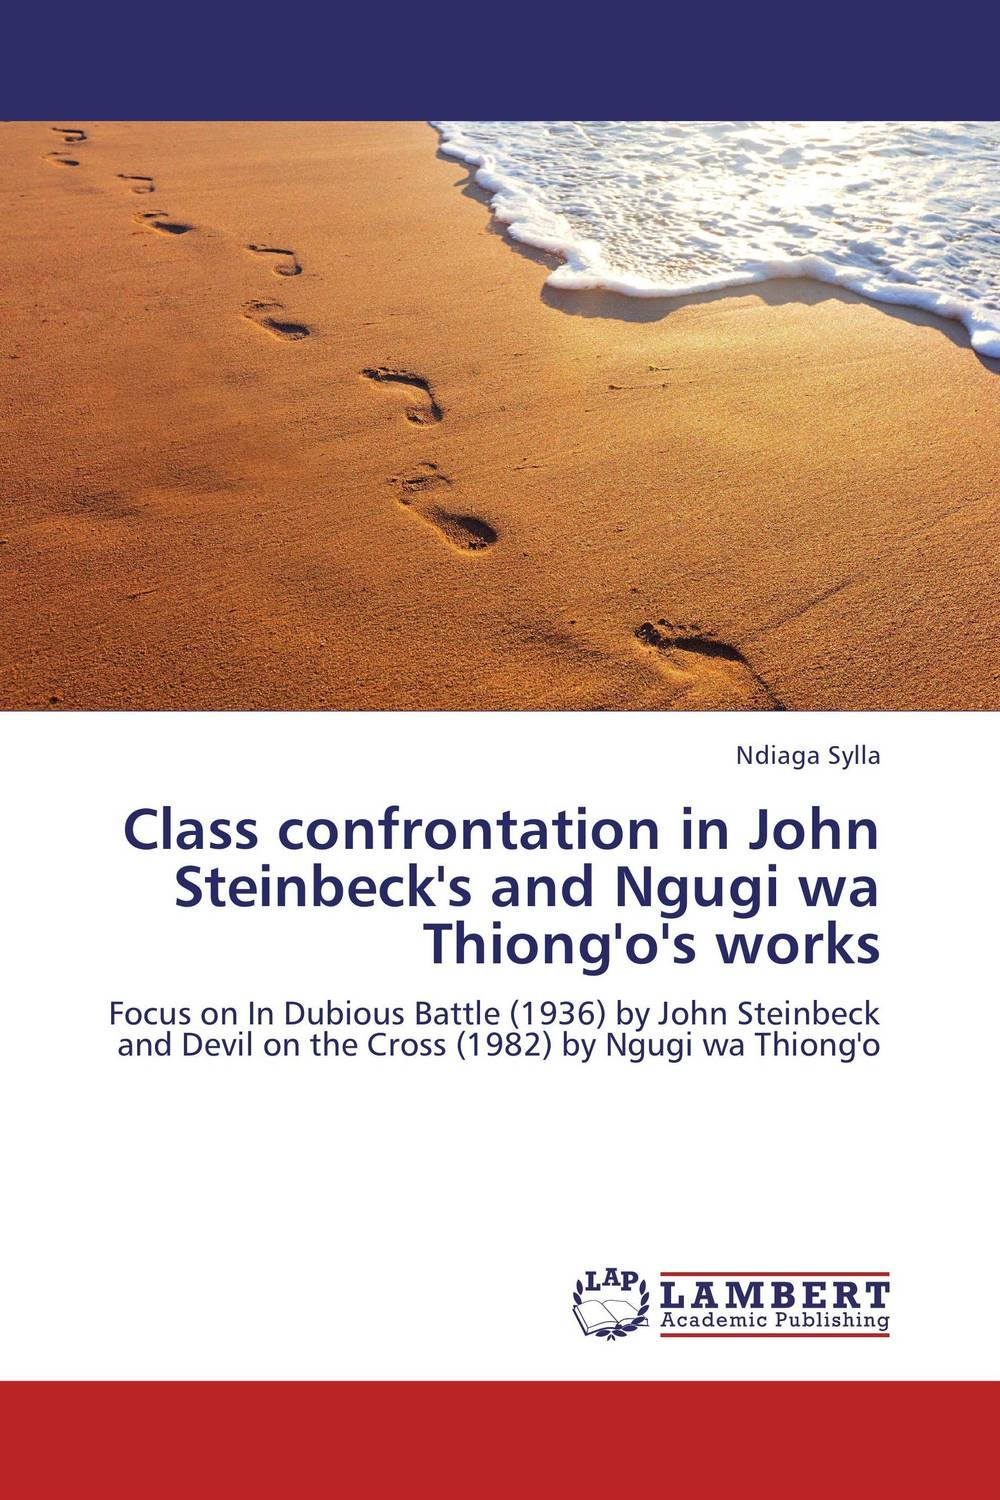 Class confrontation in John Steinbeck's and Ngugi wa Thiong'o's works fernaz mohd sadiq behlim m n kuttappa and u s krishna nayak maxillary protraction in class iii cases